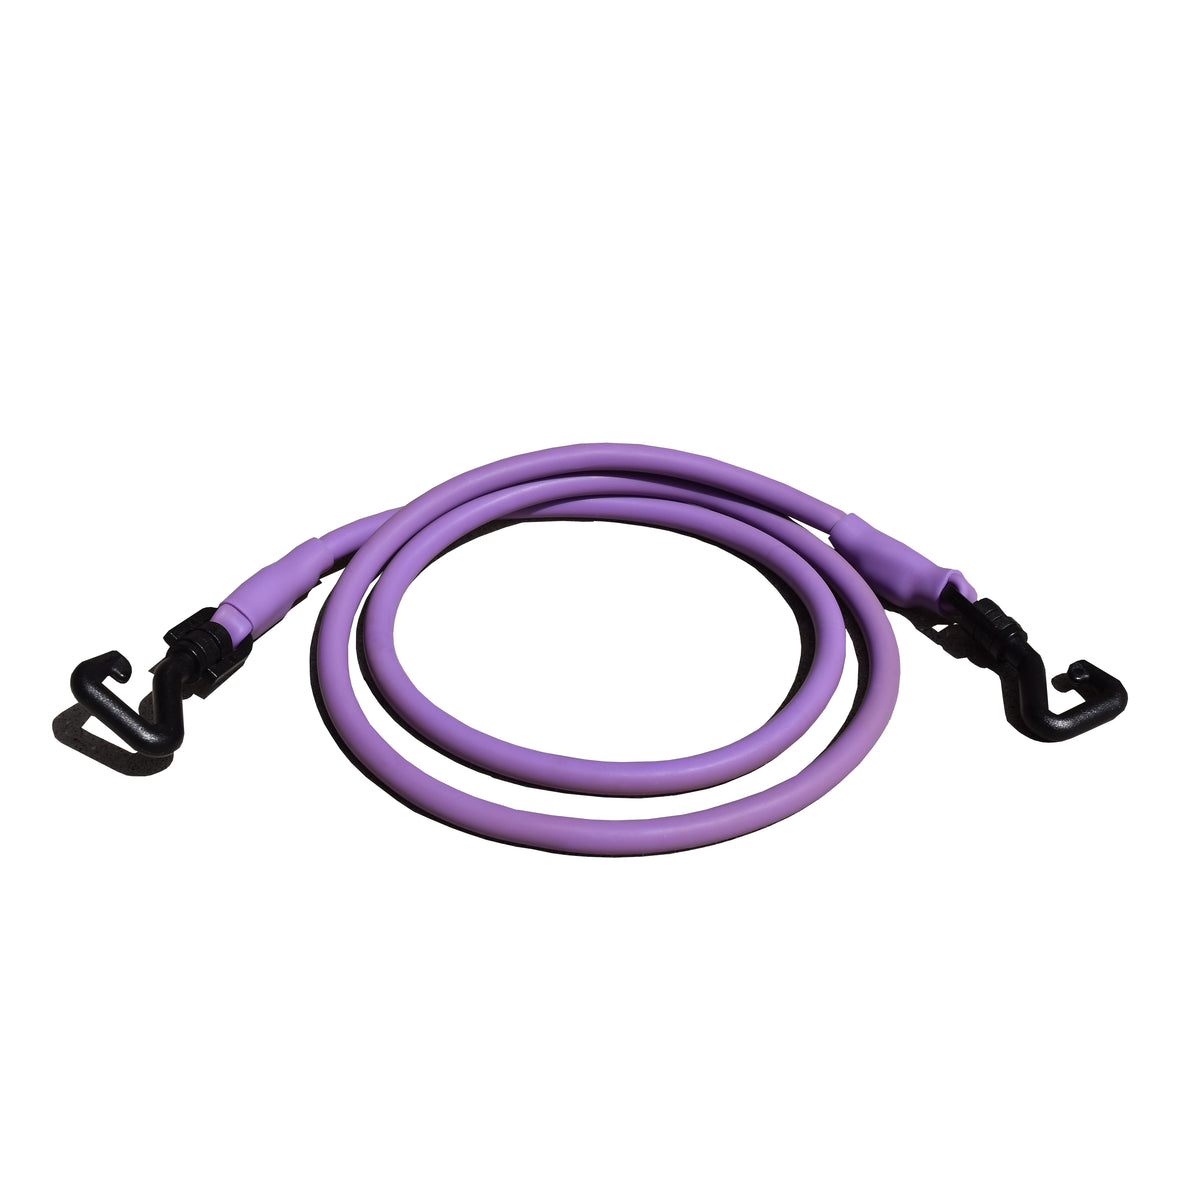 Pilates Studio Pro™ Kit - pilates anytime and anywhere - you portable pilates solution - Purple bands